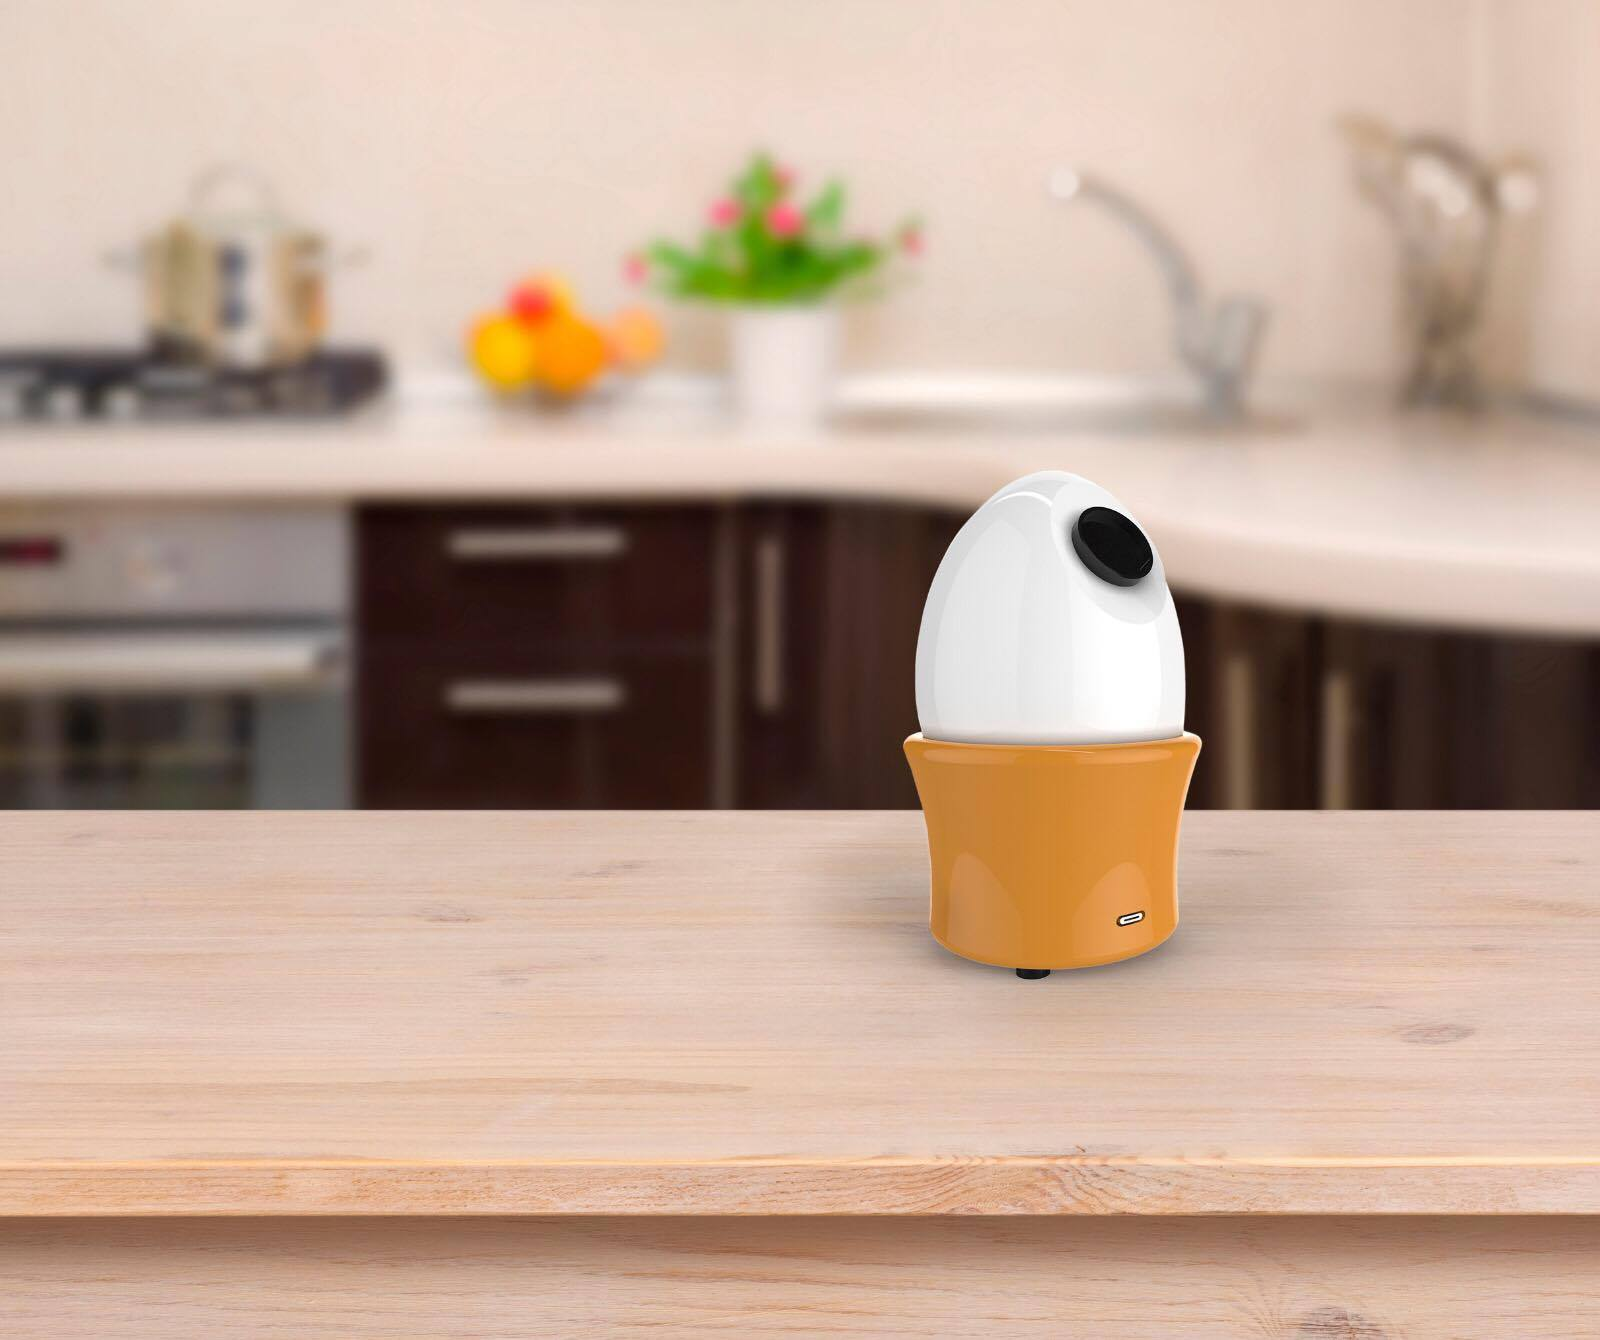 Revolutionize Smart Cooking Options To Increase Multi-Tasking Ability in Kitchen